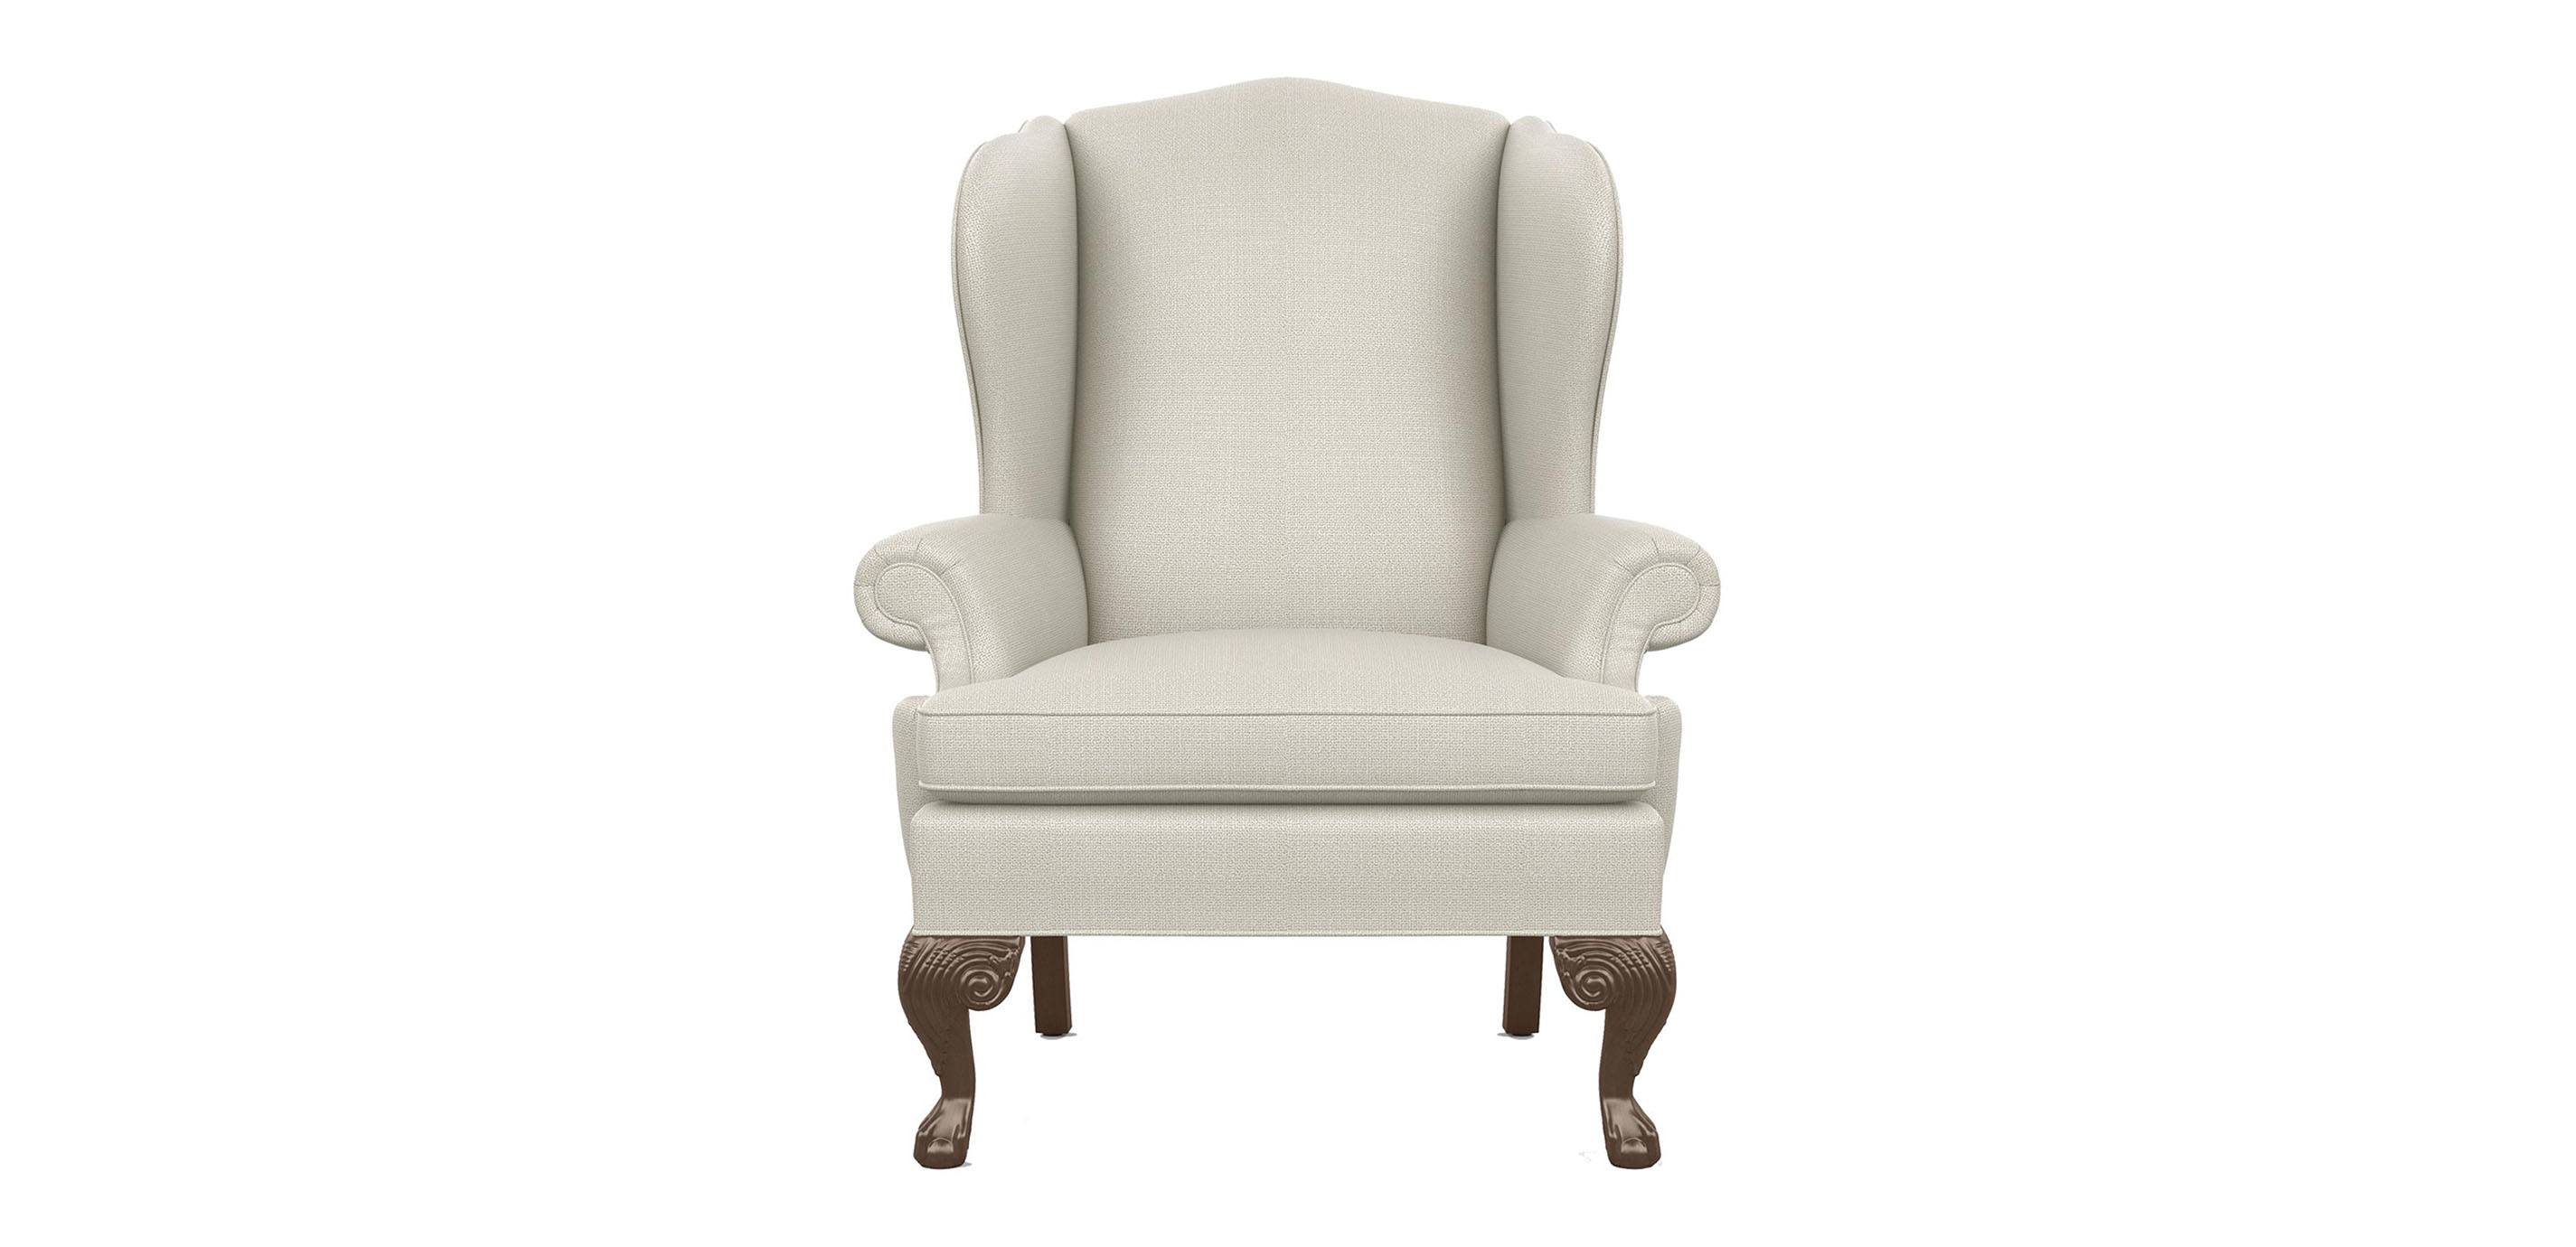 Ethan Allen Club Chairs Giles Chair Chairs Chaises Ethan Allen